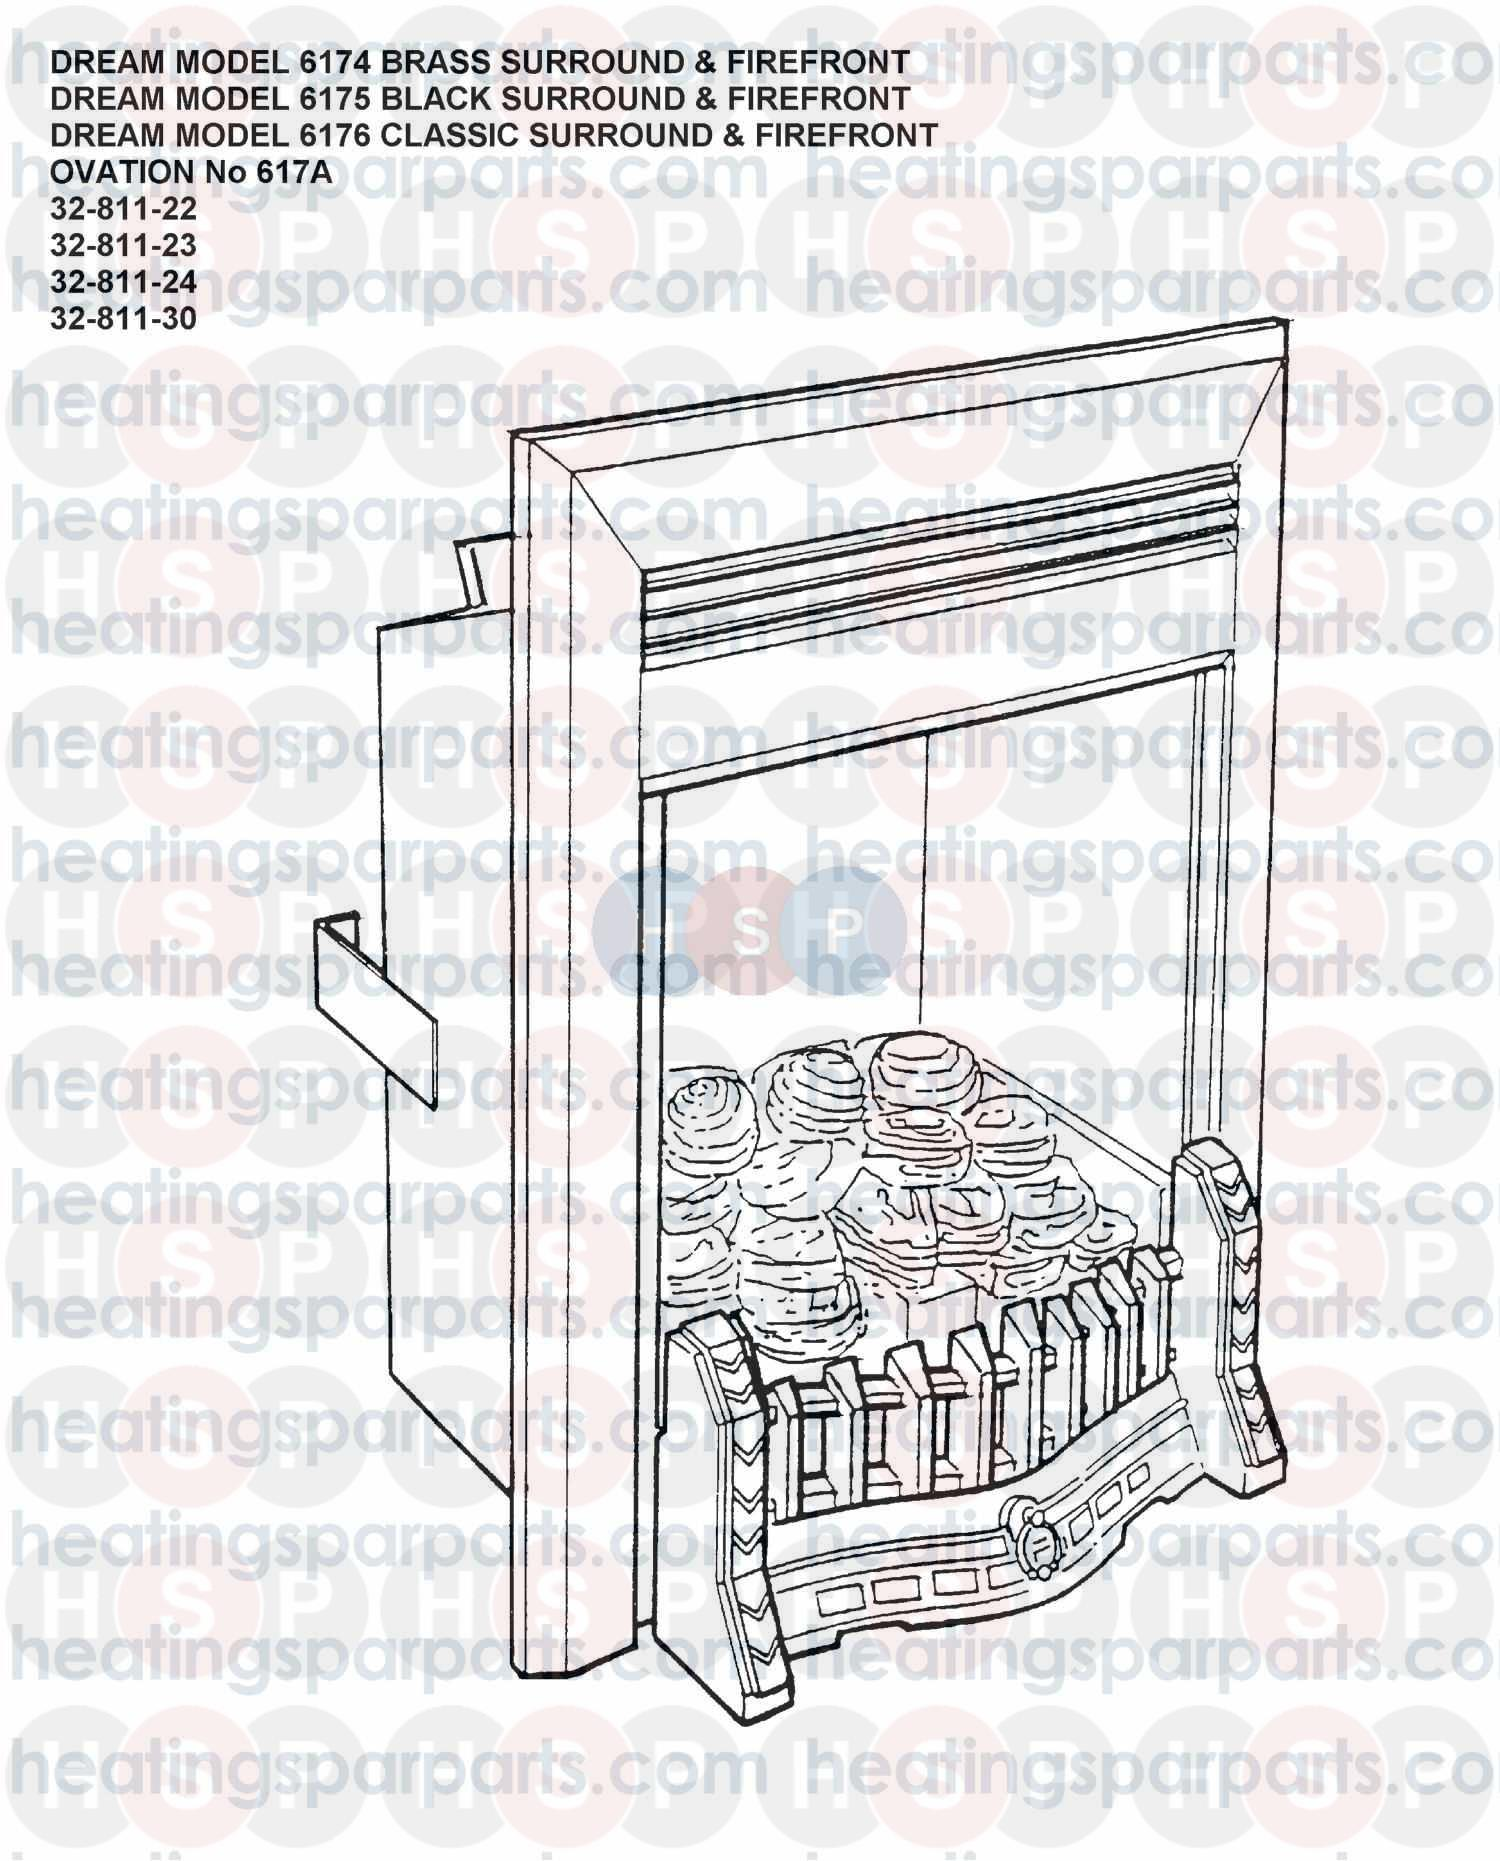 valor gas fire dream model 6174 brass surround and